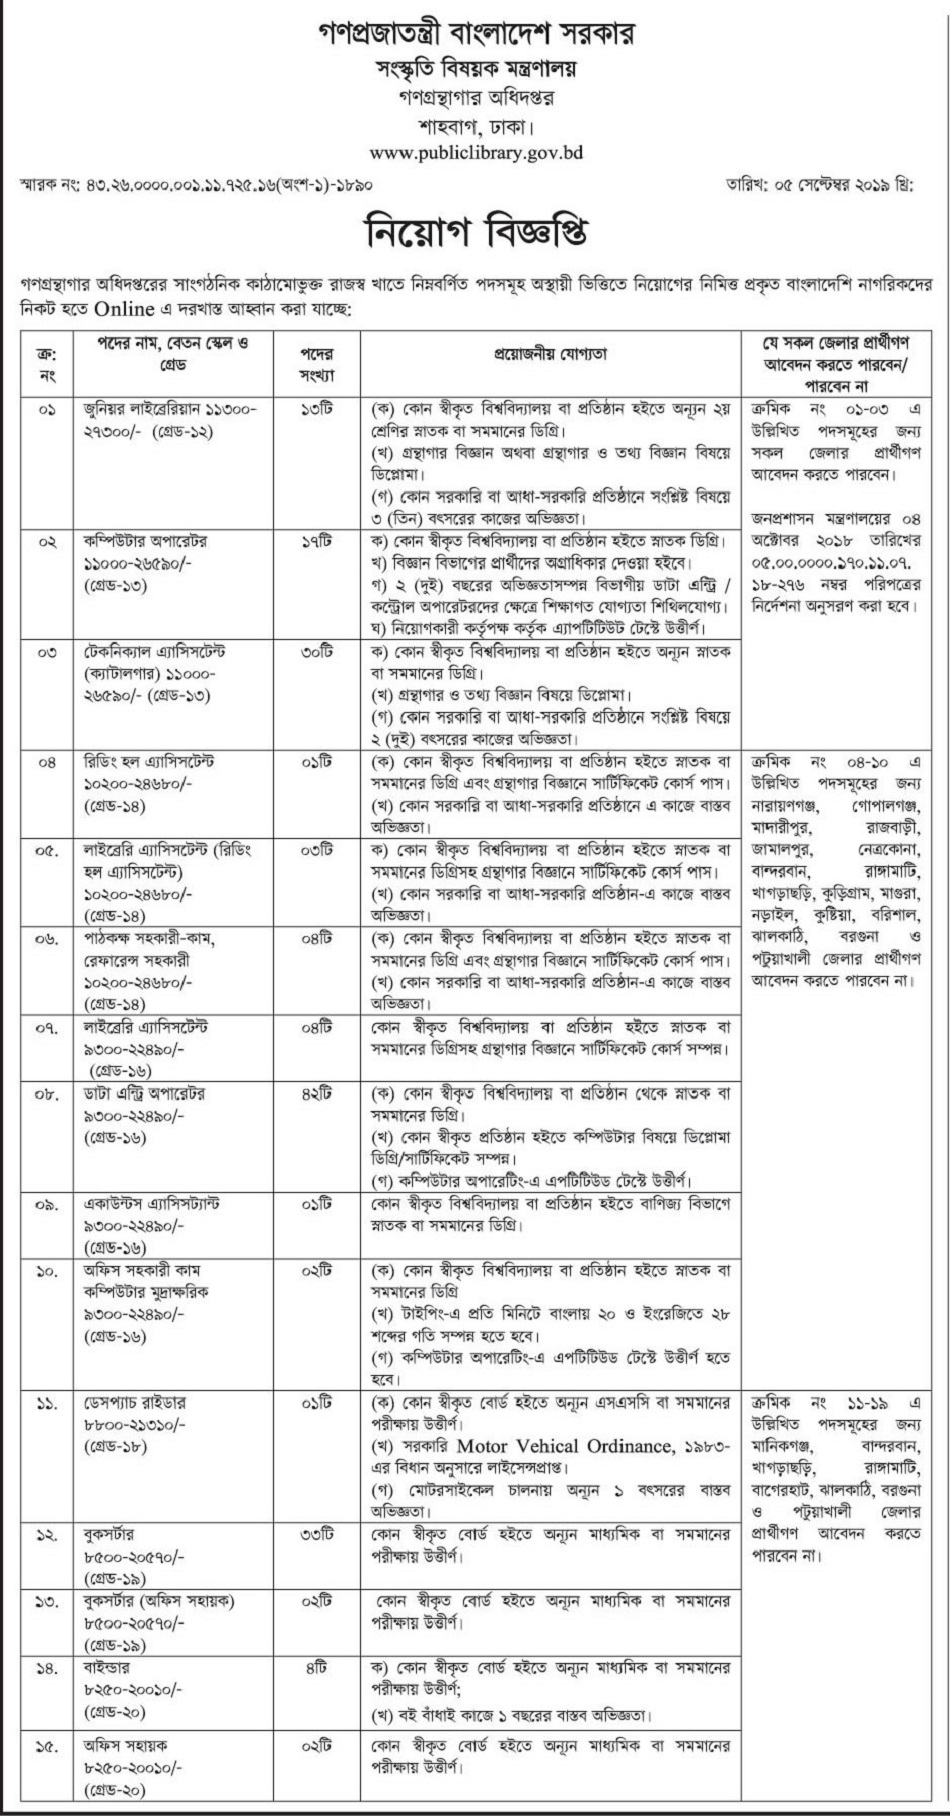 Ministry-of-Cultural-Affairs-Job-Circular-2019